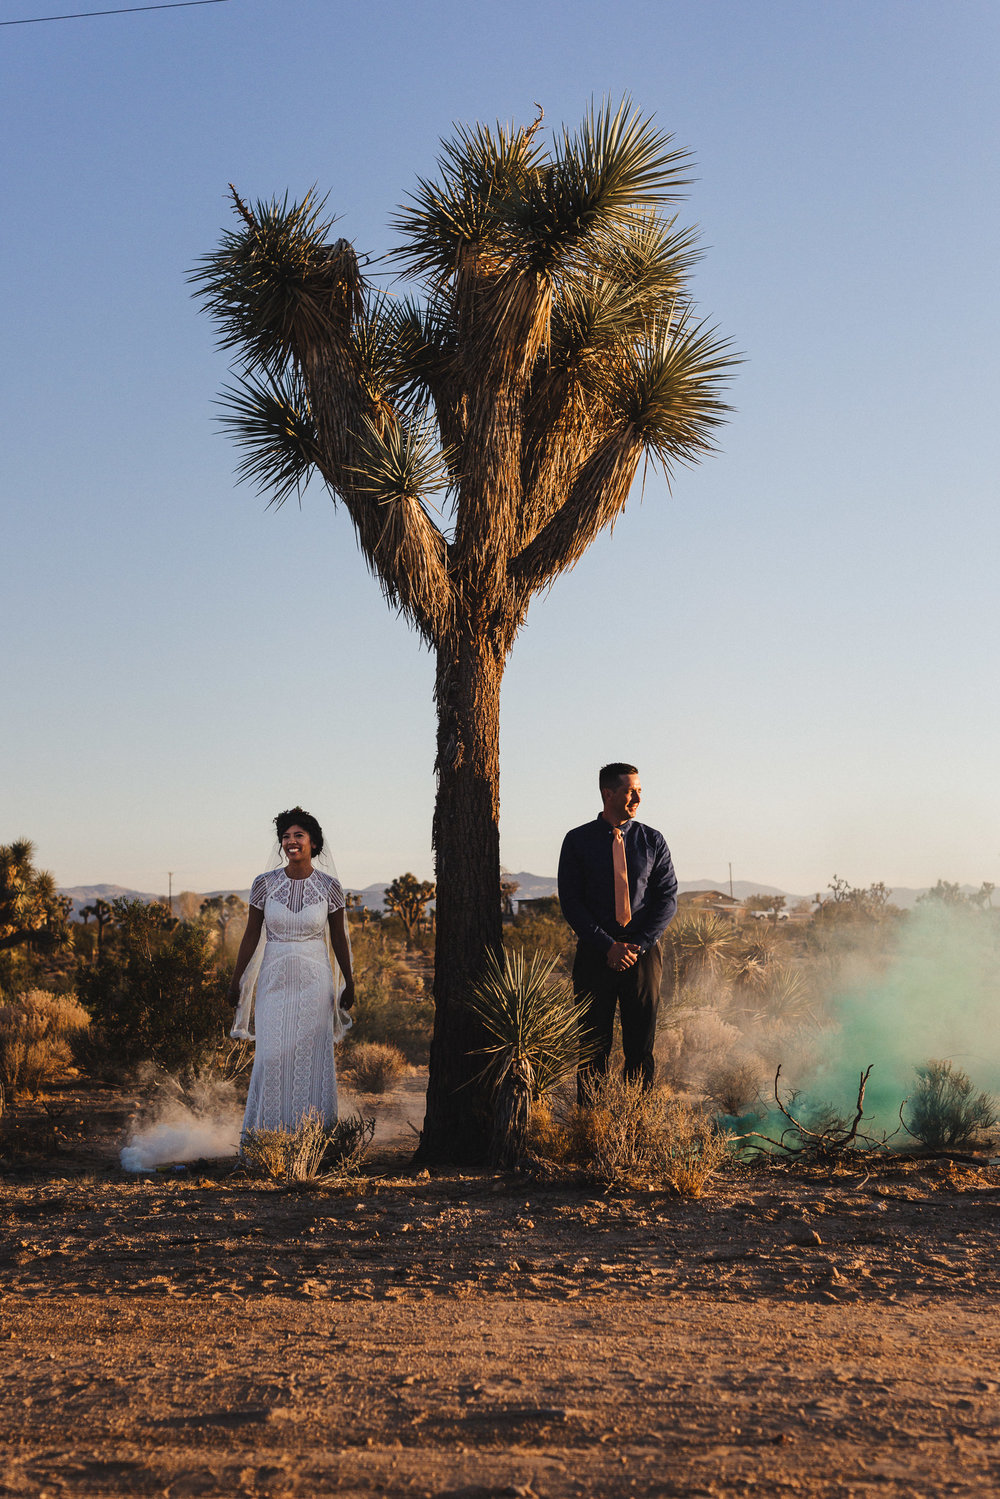 sJ + N - Joshua Tree, CA - 08 Bride + Groom-18.jpg